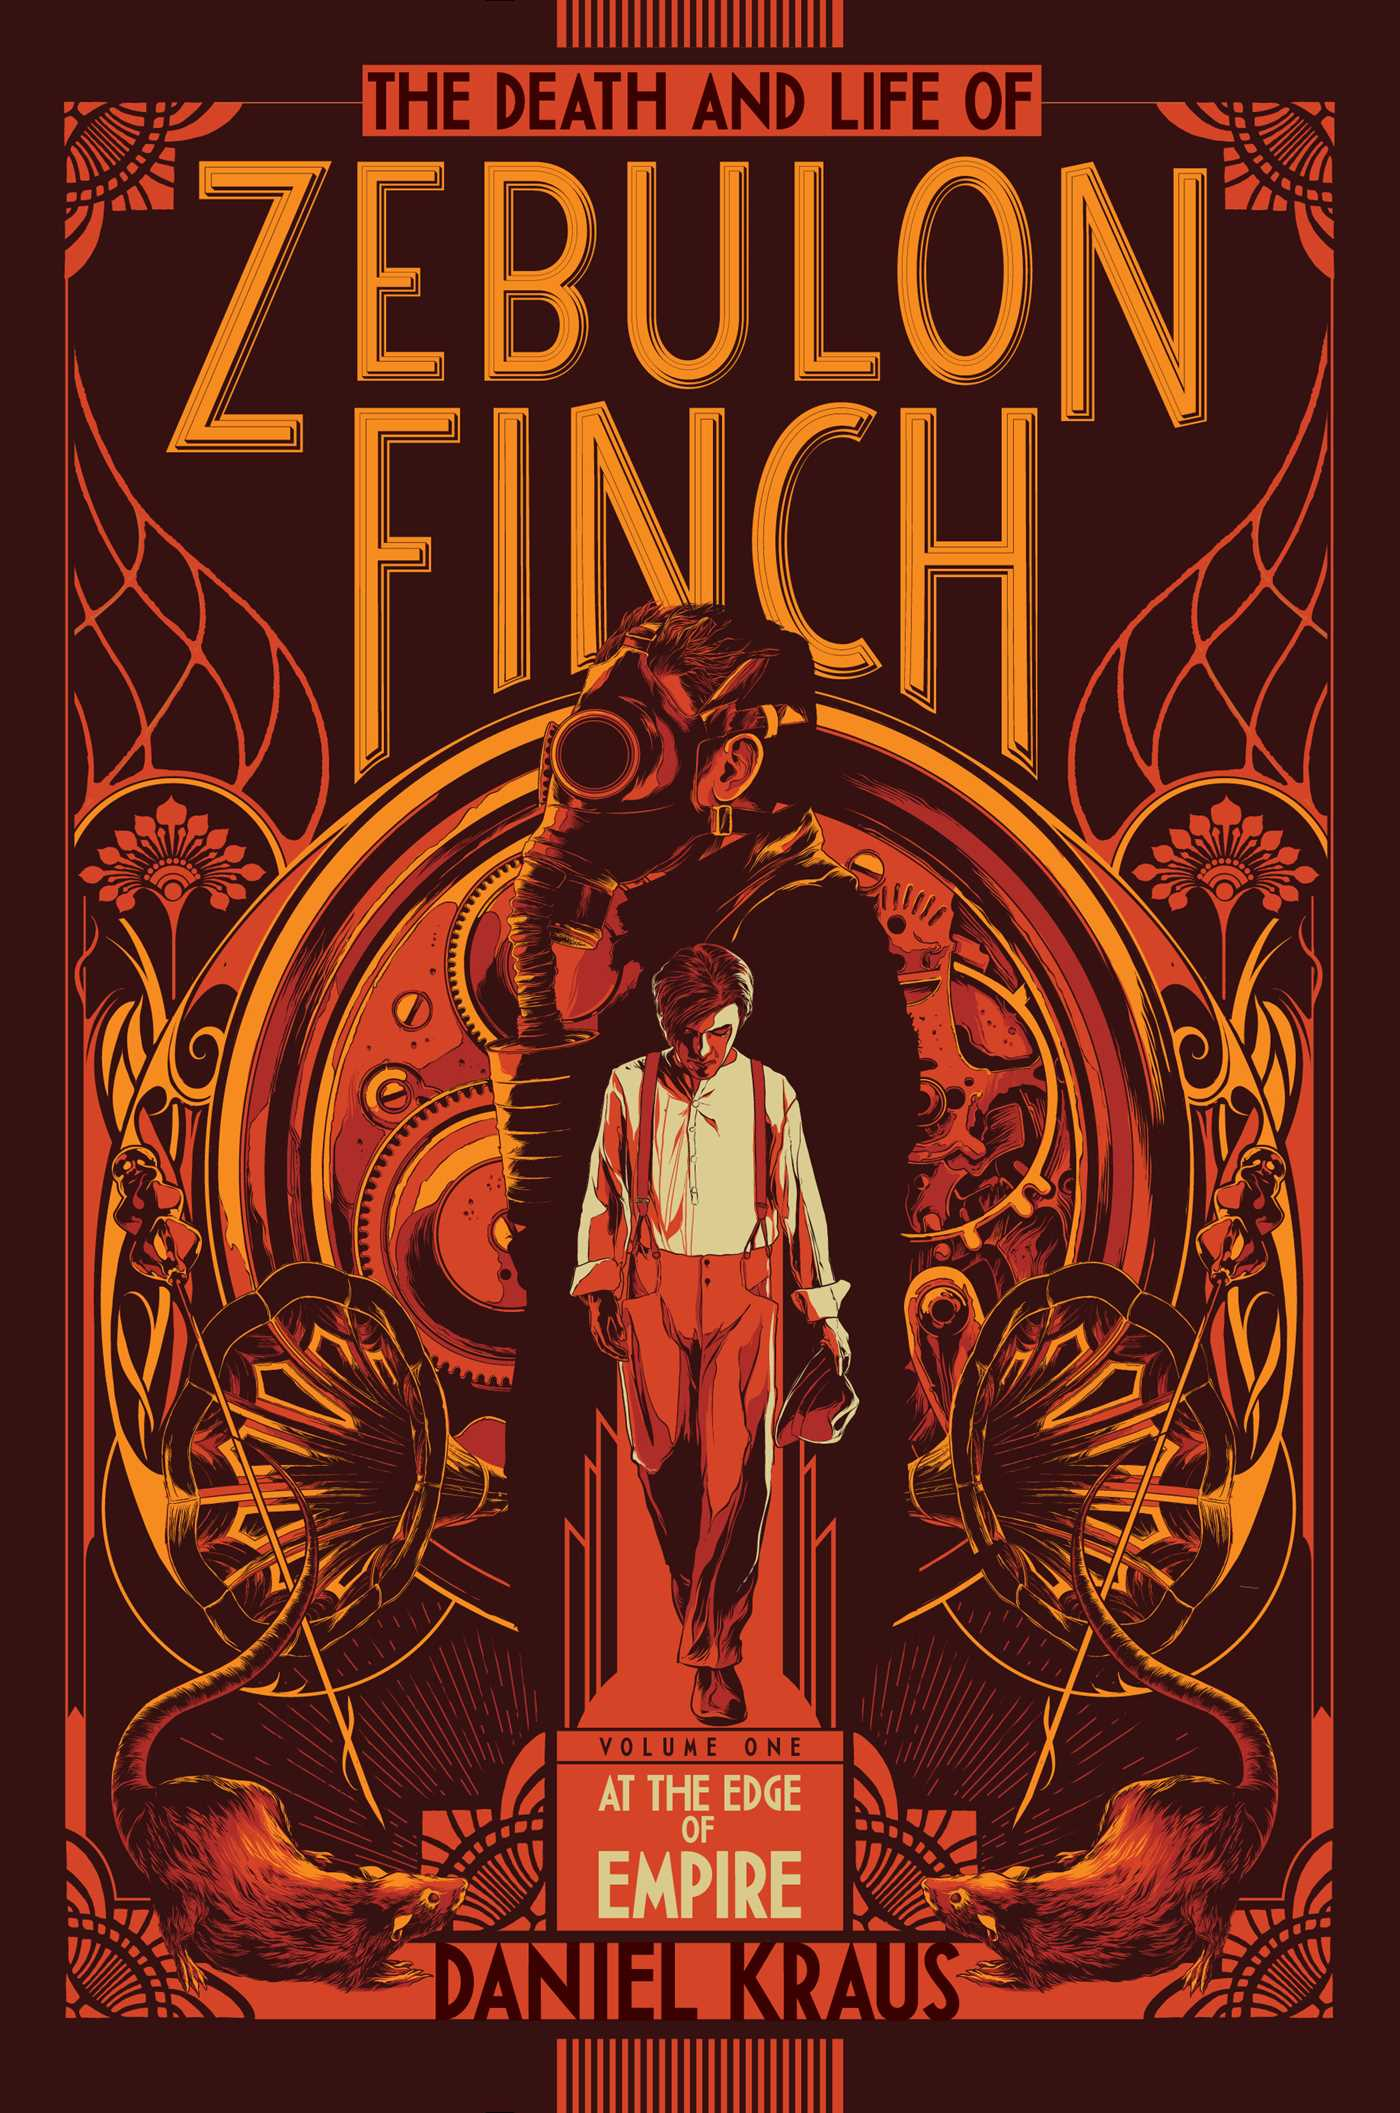 The death and life of zebulon finch volume one 9781481411394 hr